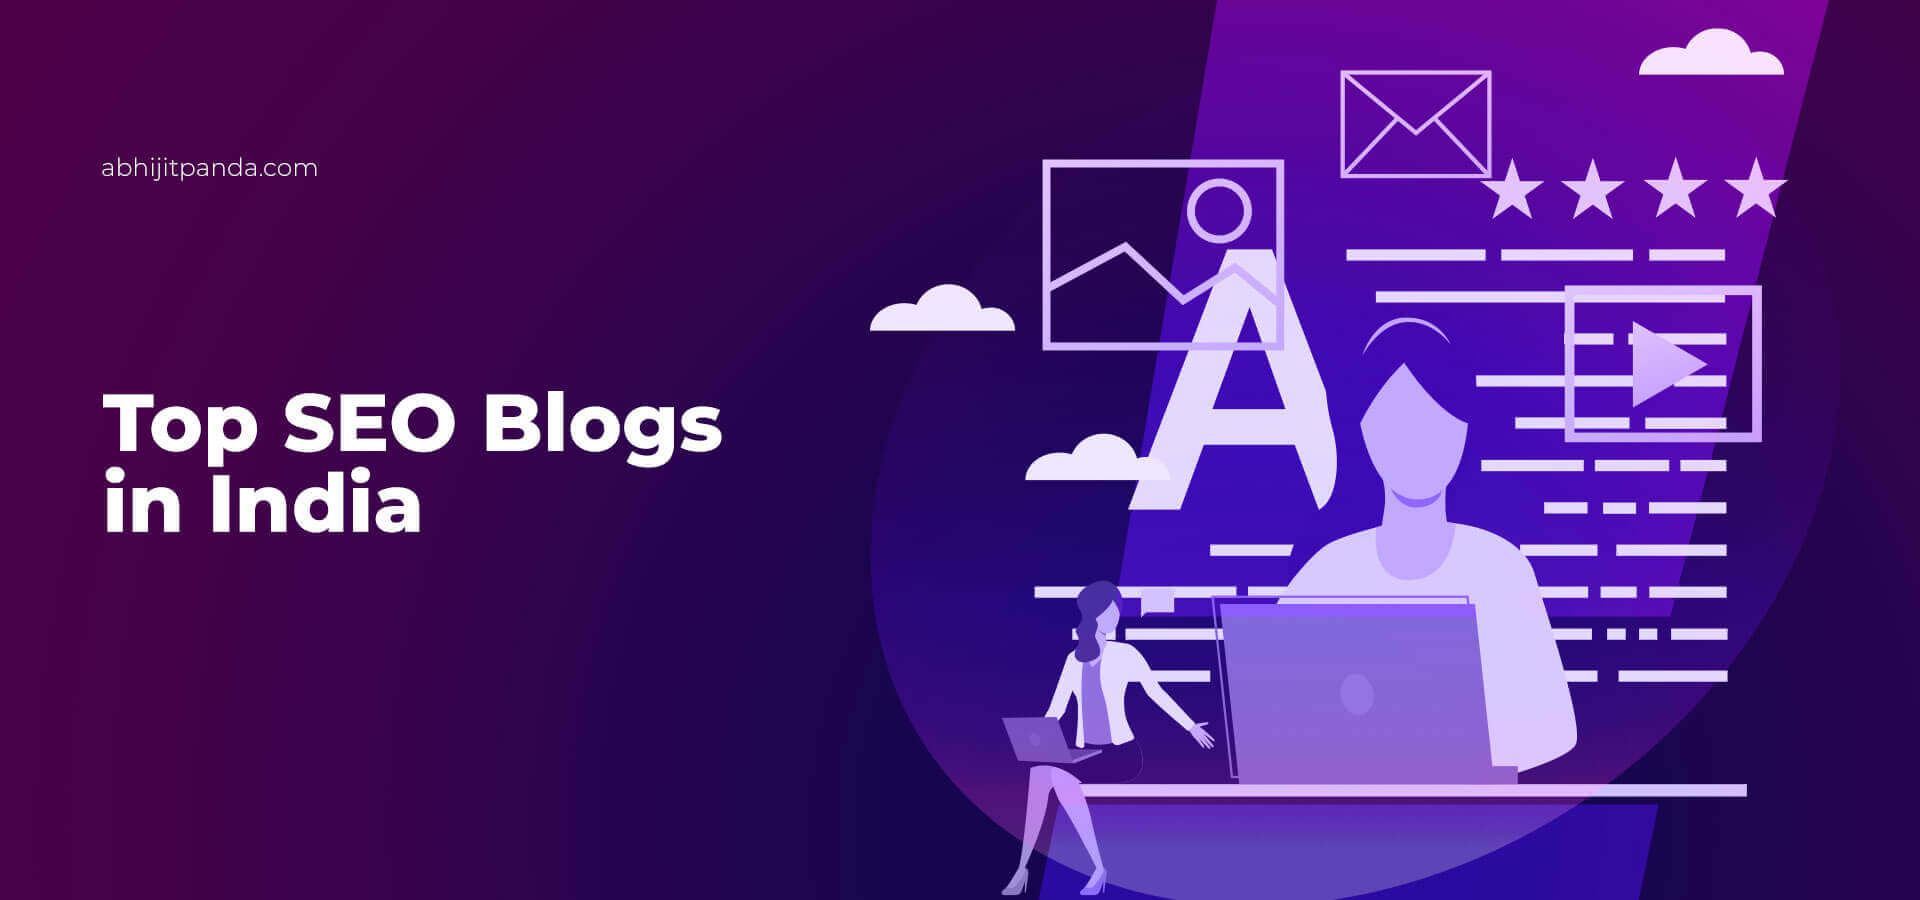 Top SEO Blogs in India